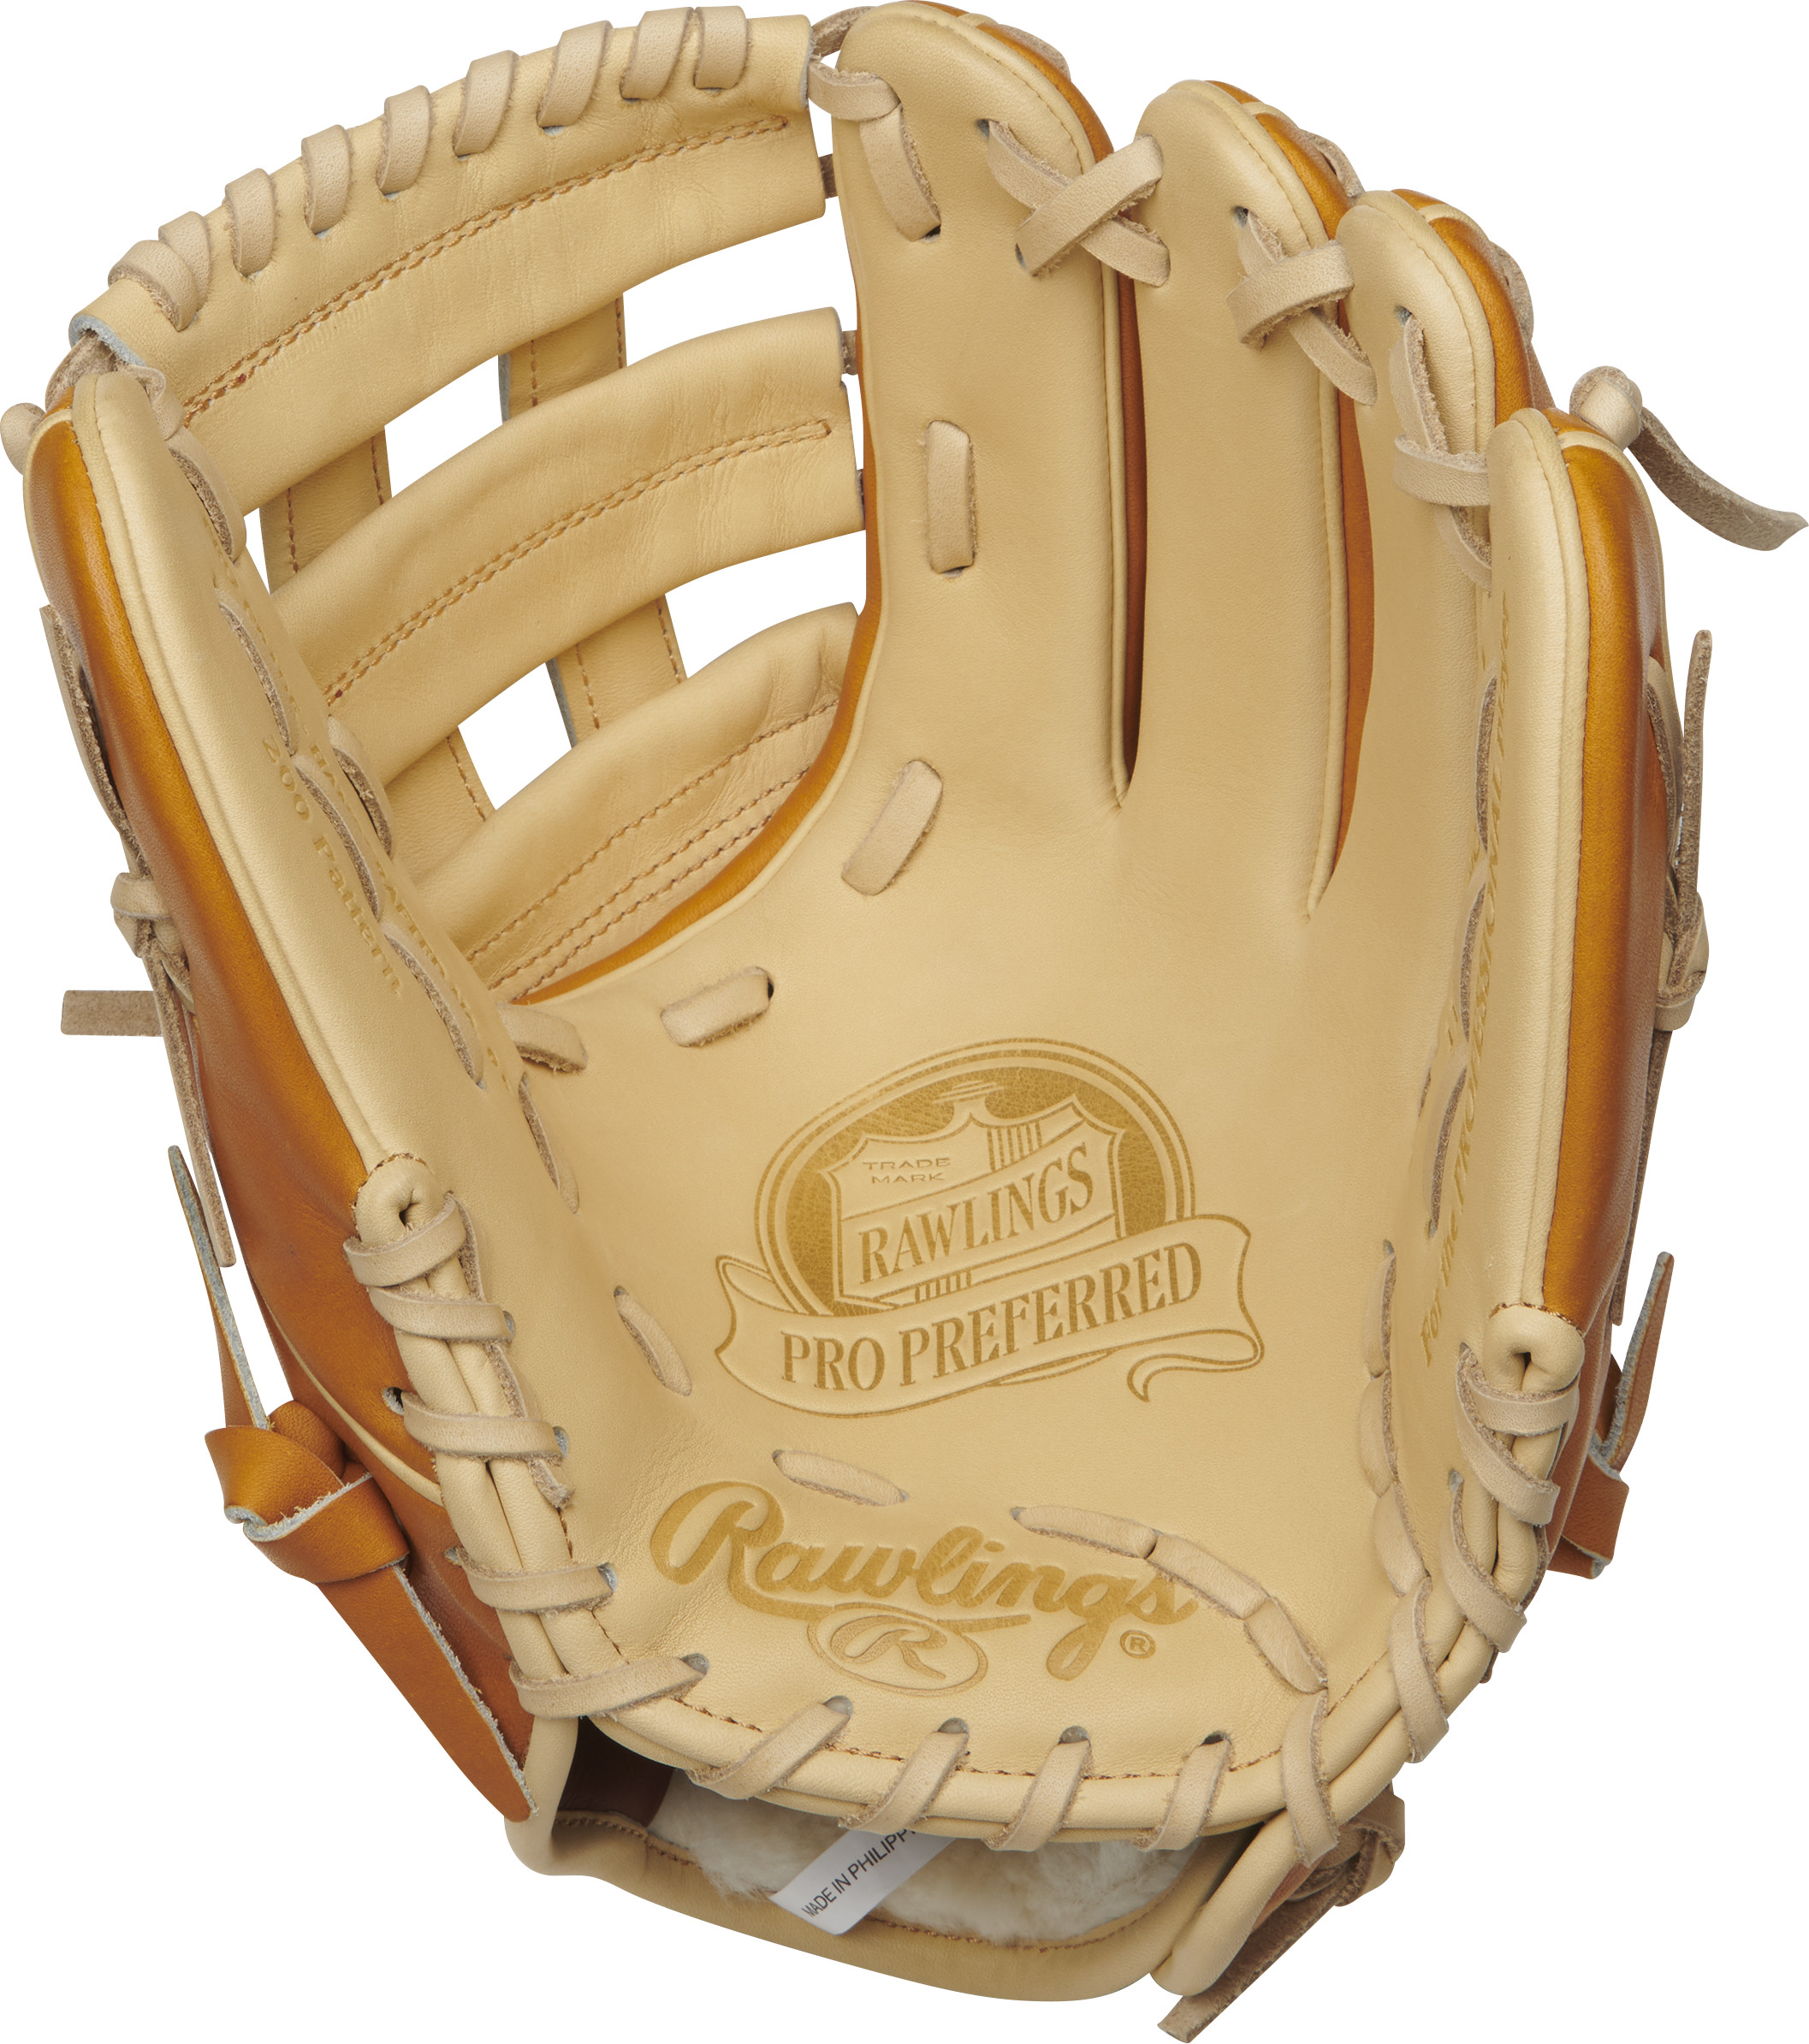 http://www.bestbatdeals.com/images/rawlingsgloves/PROS204-6CT-1.jpg